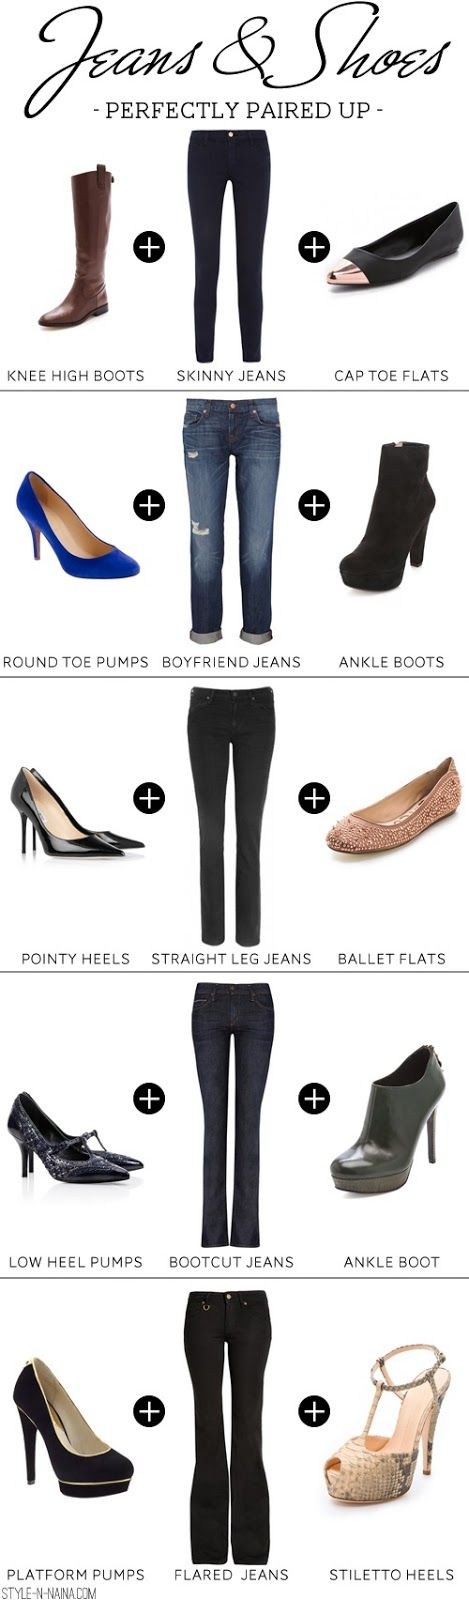 Shoes to wear with boot-cut jeans fashion Jeans and shoes perfectly paired up